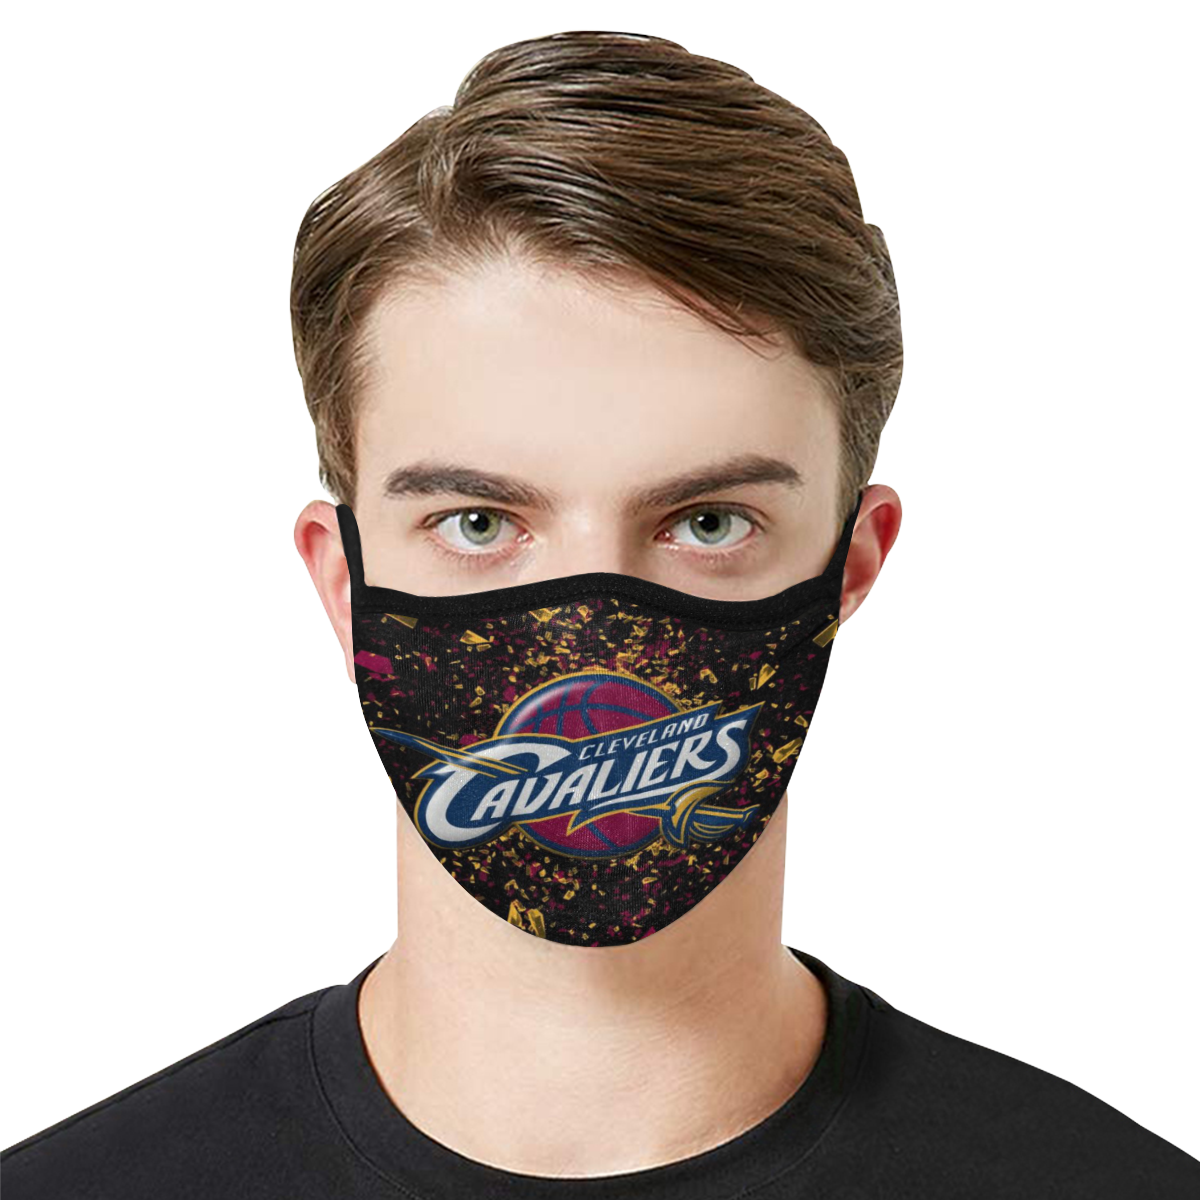 Cleveland Cavaliers Face Mask